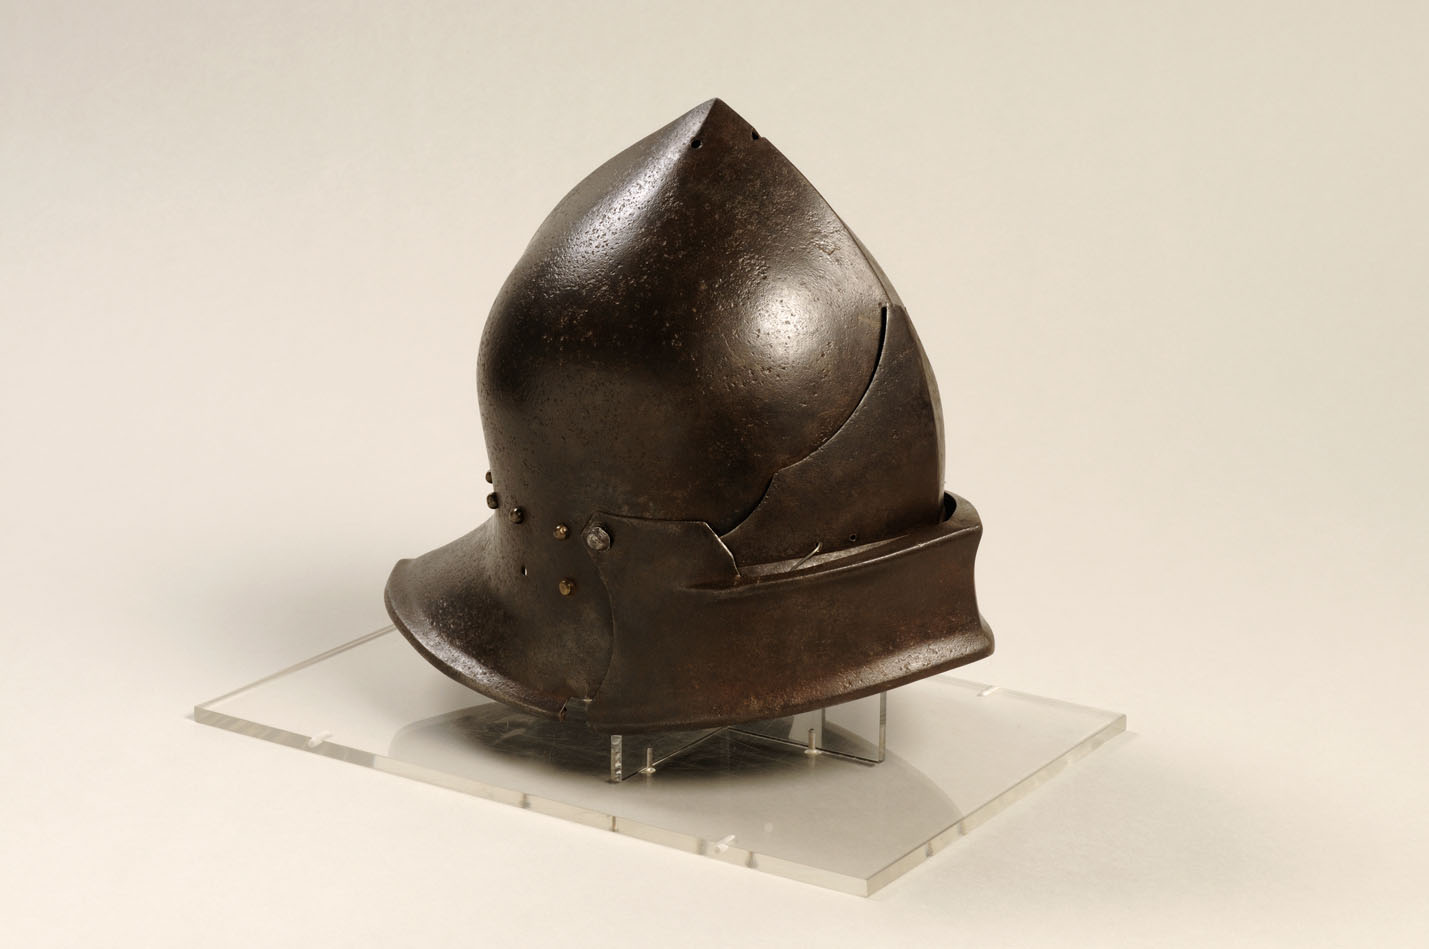 A sallet made during the Wars of the Roses c. 1460 by Martin Rondele of Bruges and kept at St Mary's Guildhall